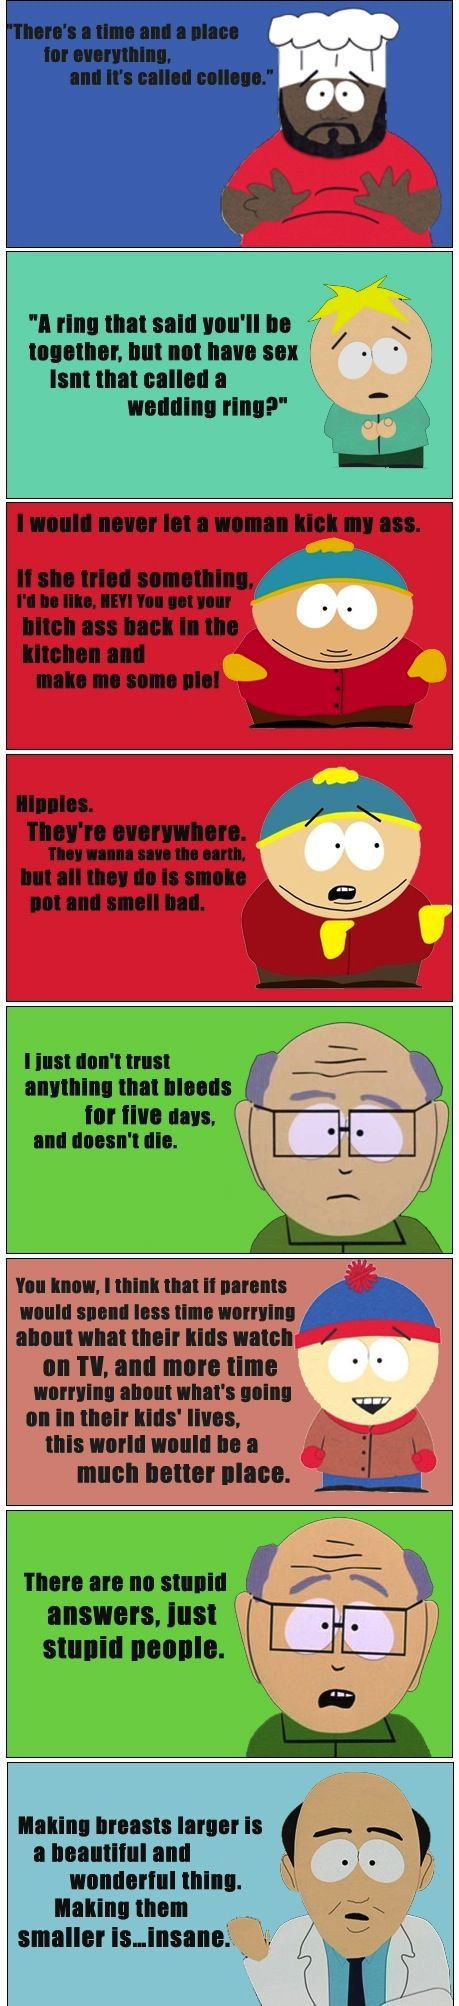 funny south park quotes